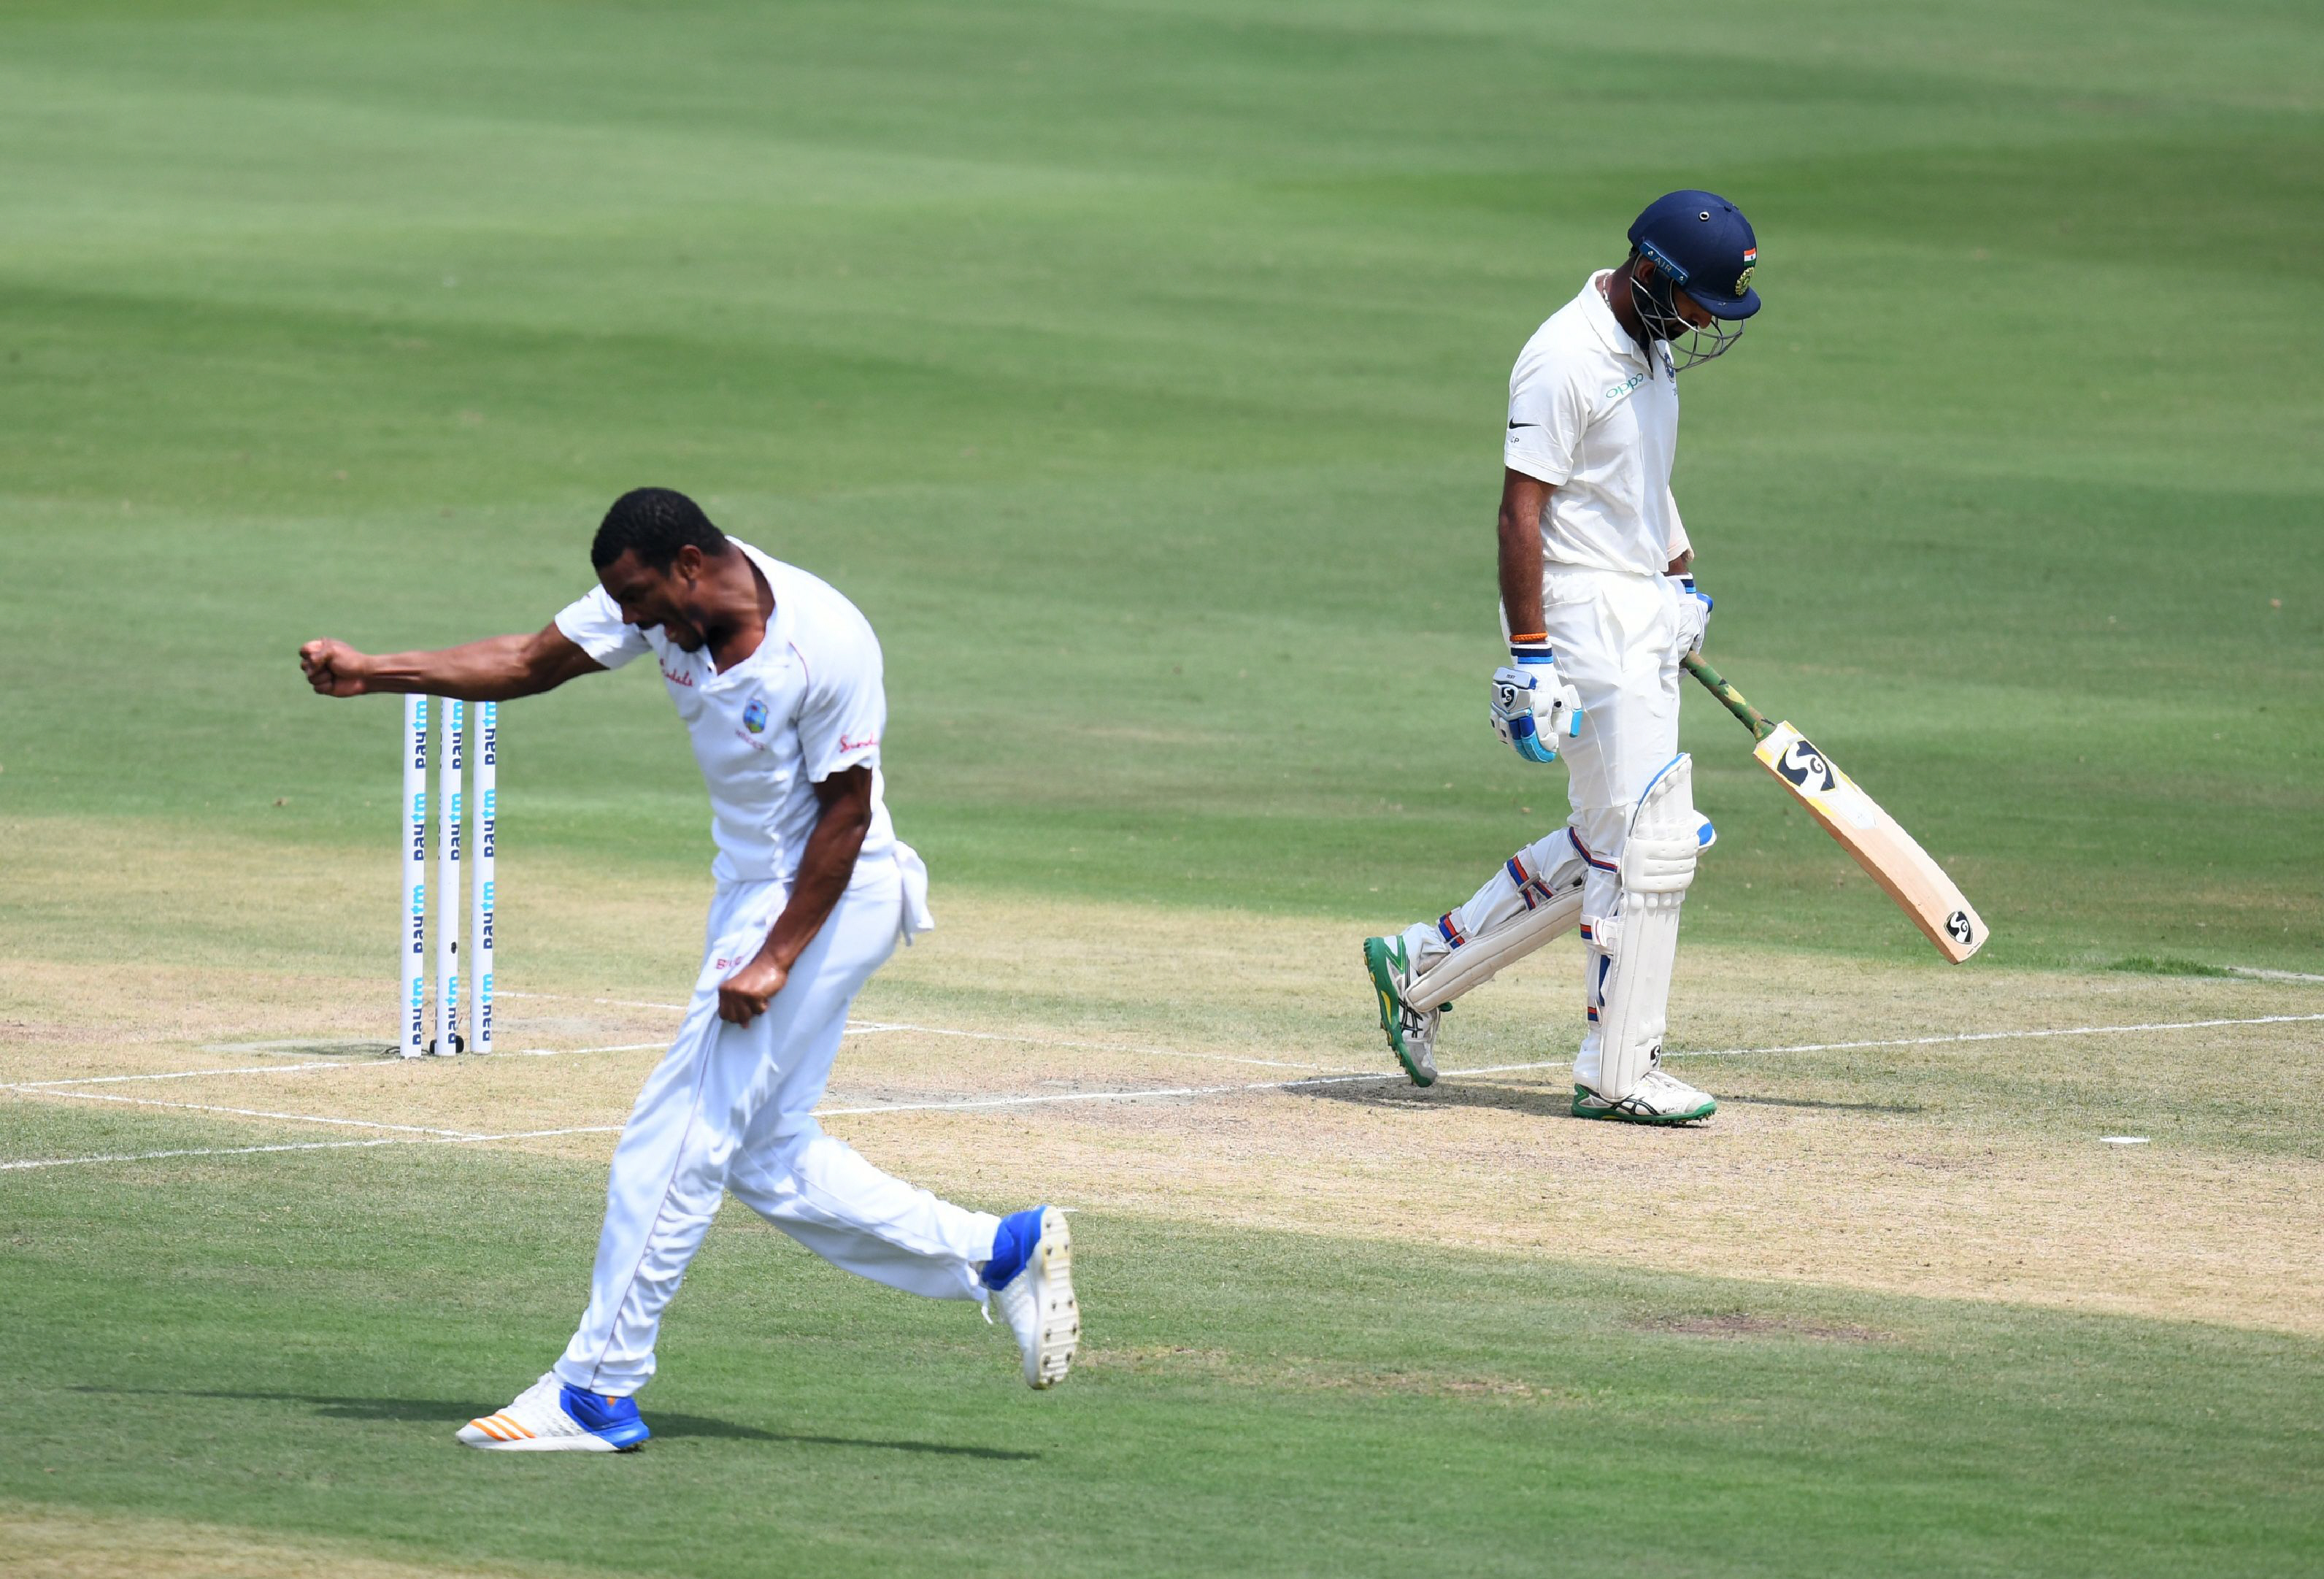 India vs West Indies - Second Test match at Hyderabad